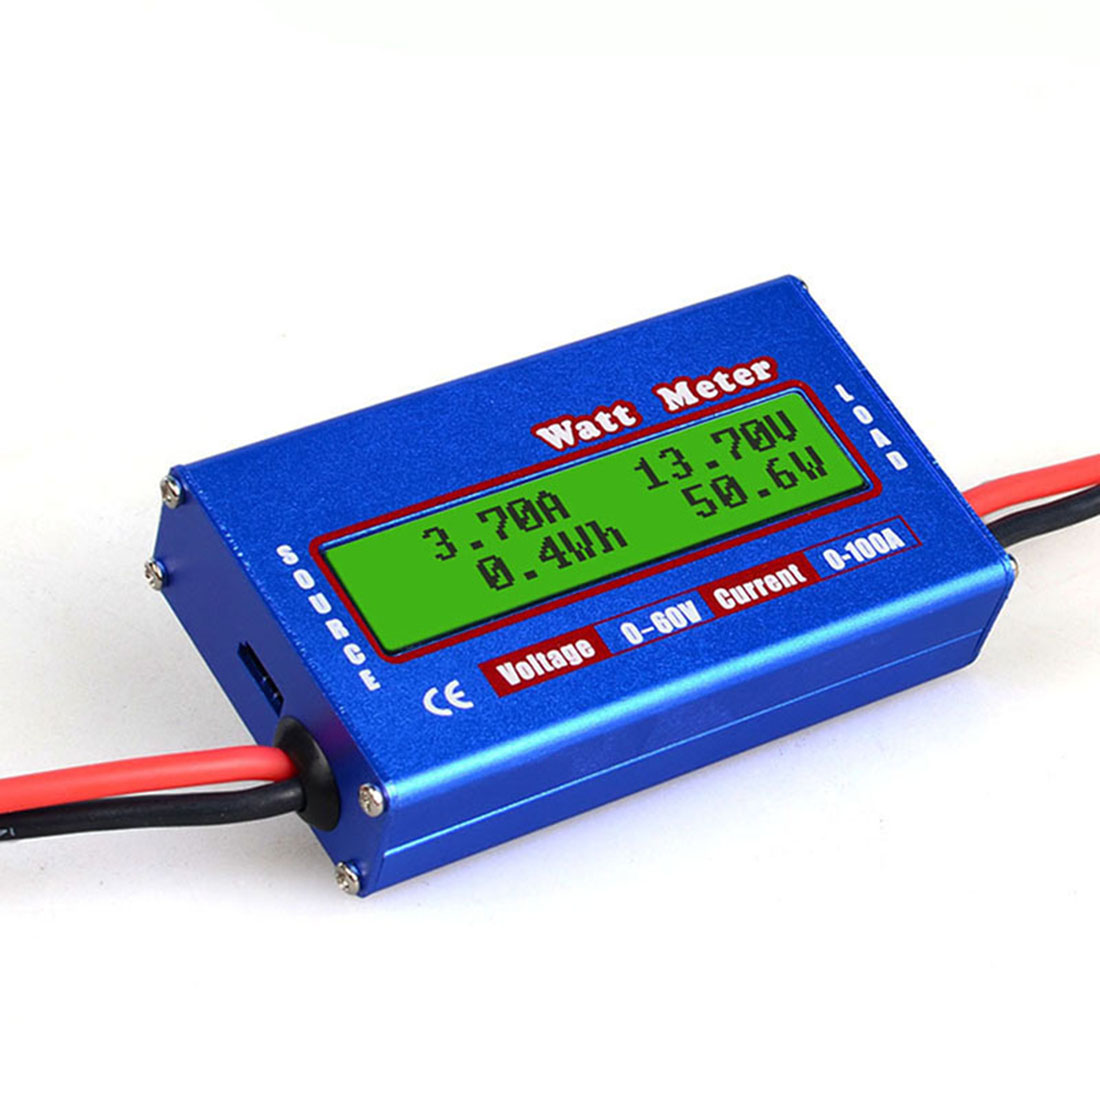 Battery Voltage Balance RC Power Analyzer Watt Meter Professional Checker Watt Meter Balancer Charger RC Tools Professional RC